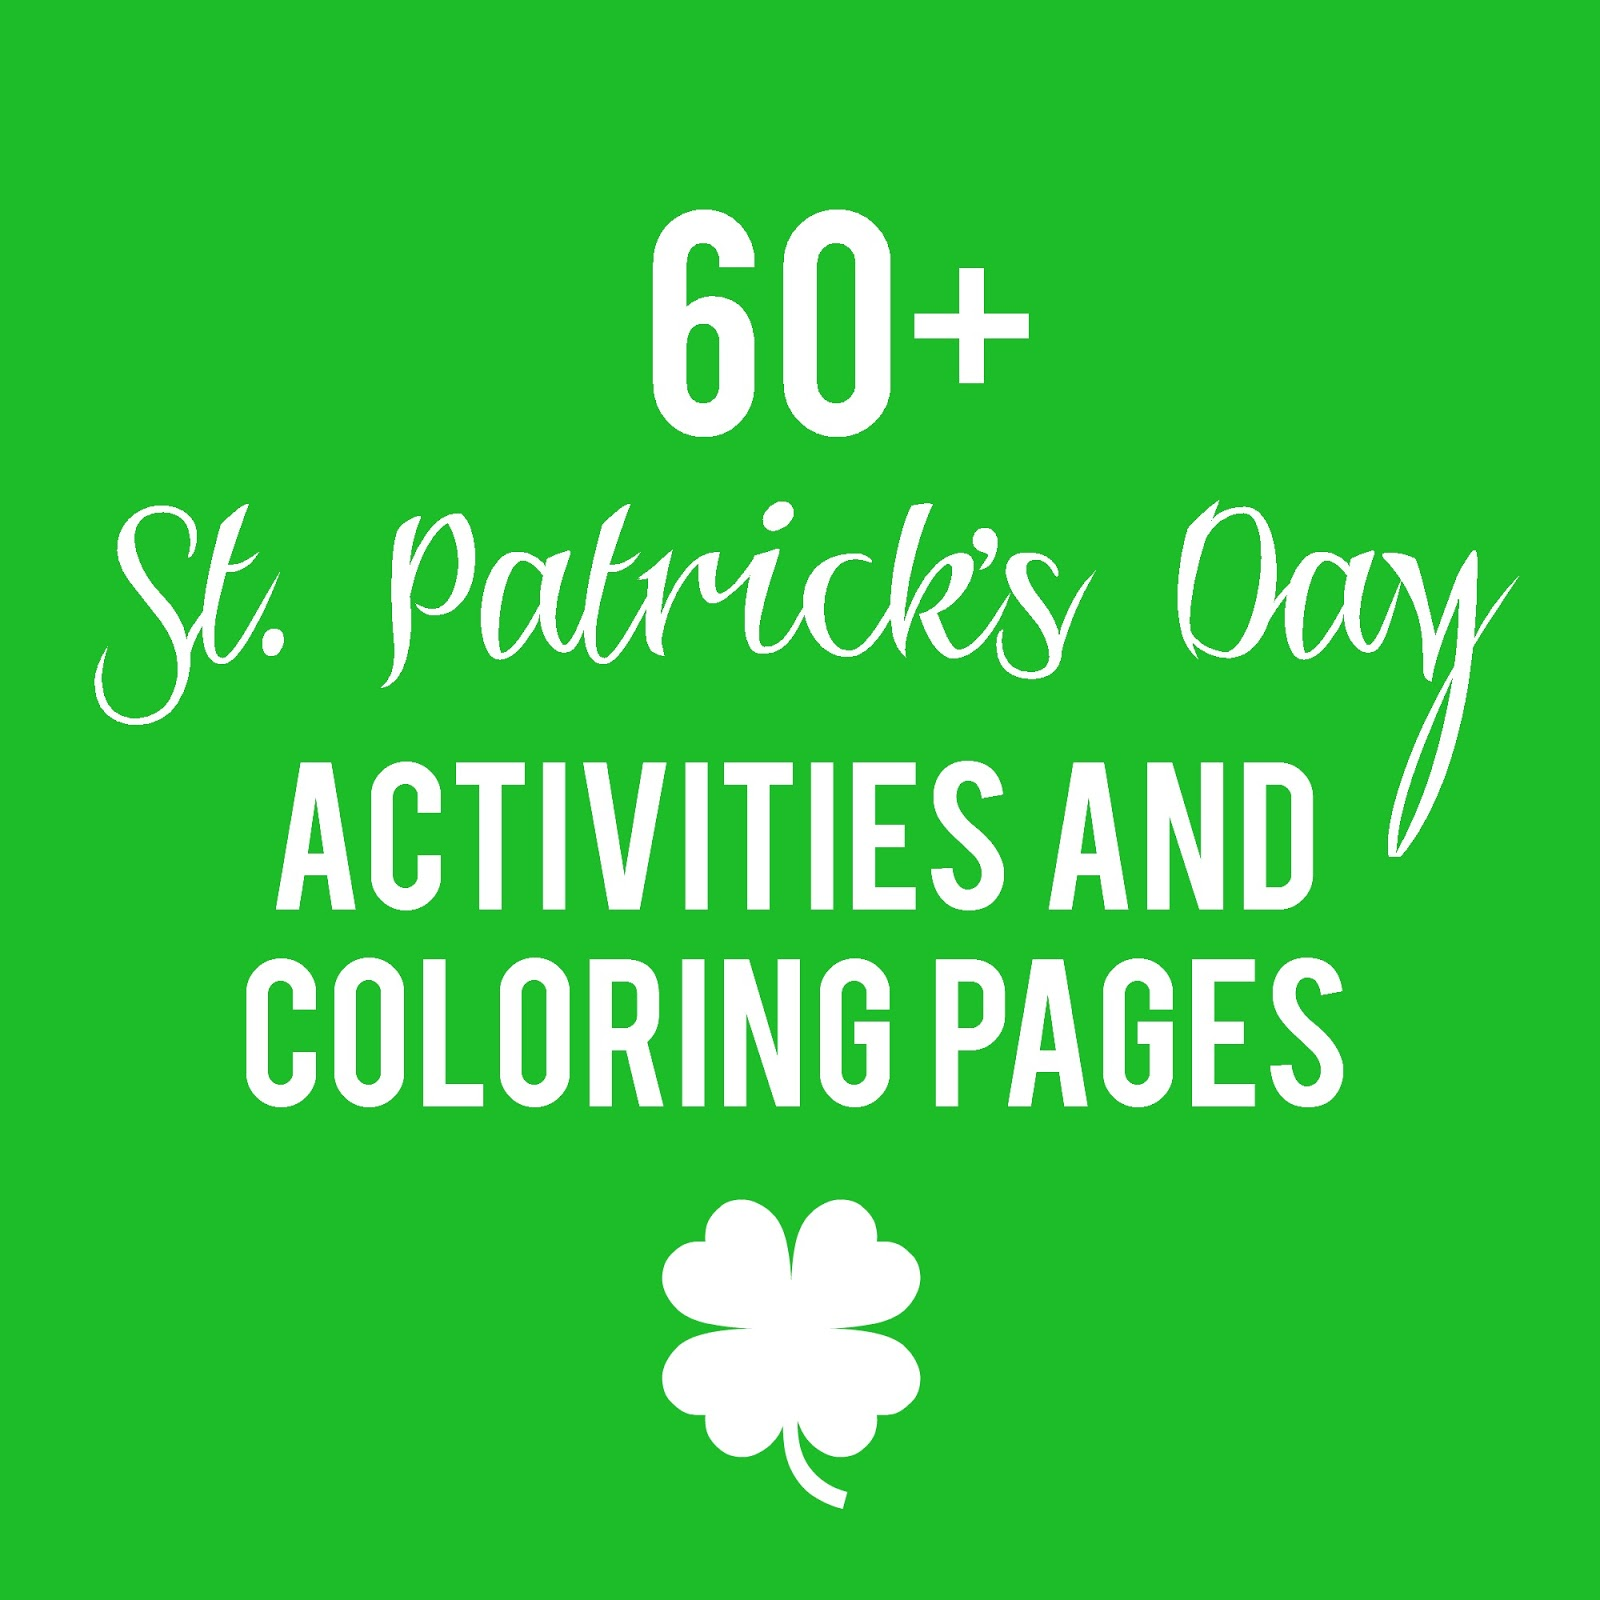 60 st patrick u0027s day activities and coloring pages sunshine and